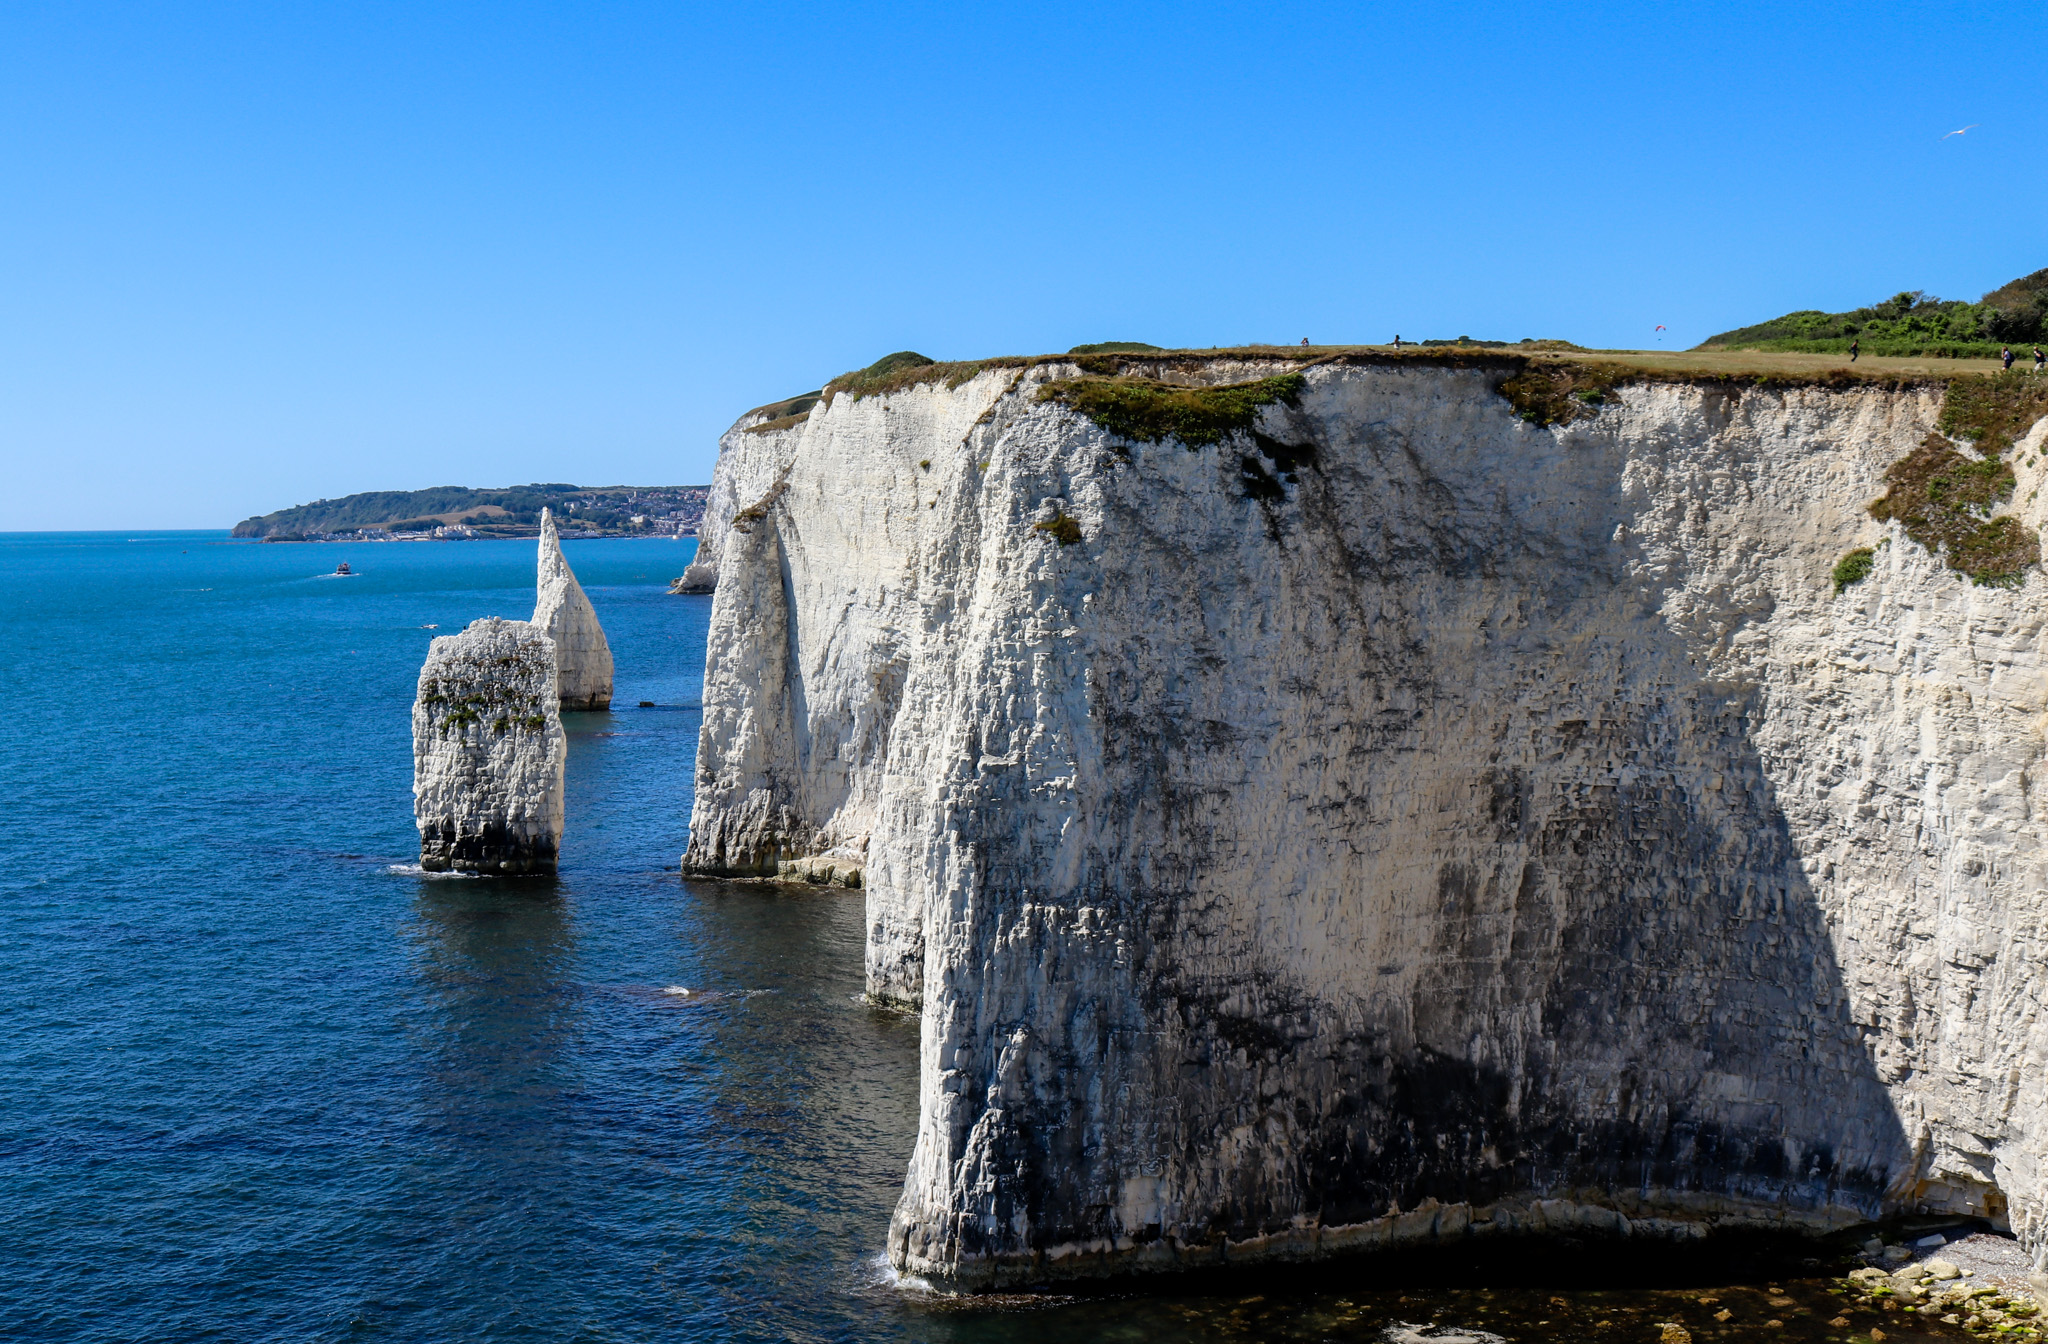 Chalk stacks The Pinnacles in Studland